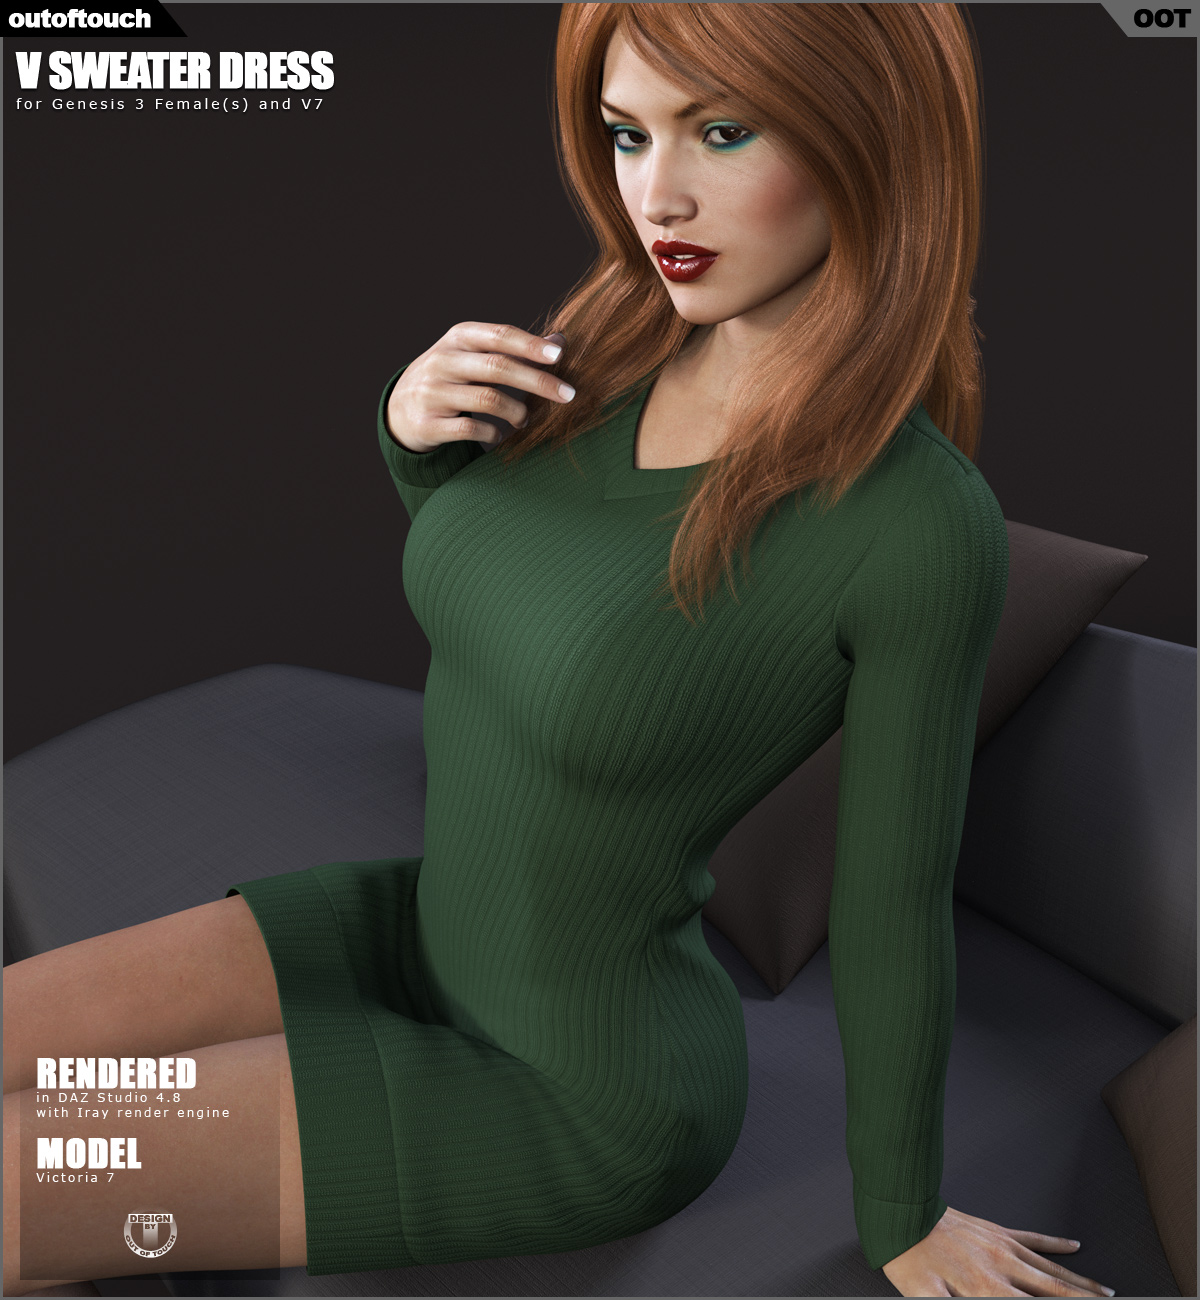 V Sweater Dress for Genesis 3 Female(s)